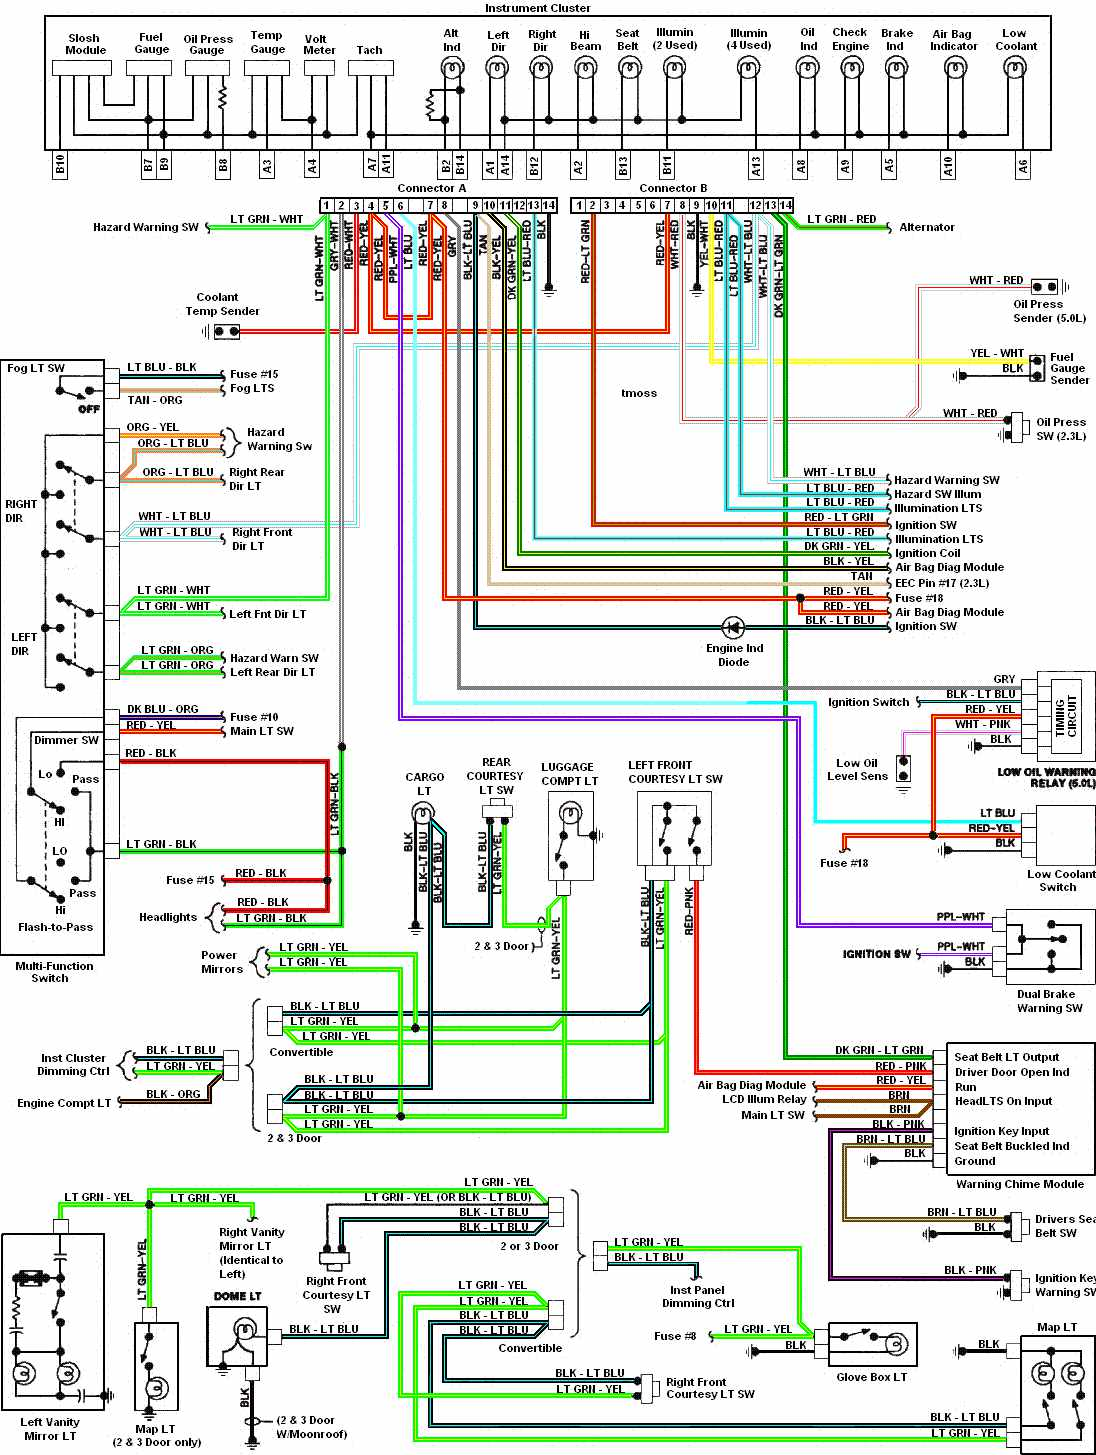 [DIAGRAM_3ER]  8AF6 88 Ford E 150 Wiring Diagram | Wiring Library | 1988 Ford E150 Wiring Diagram |  | Wiring Library